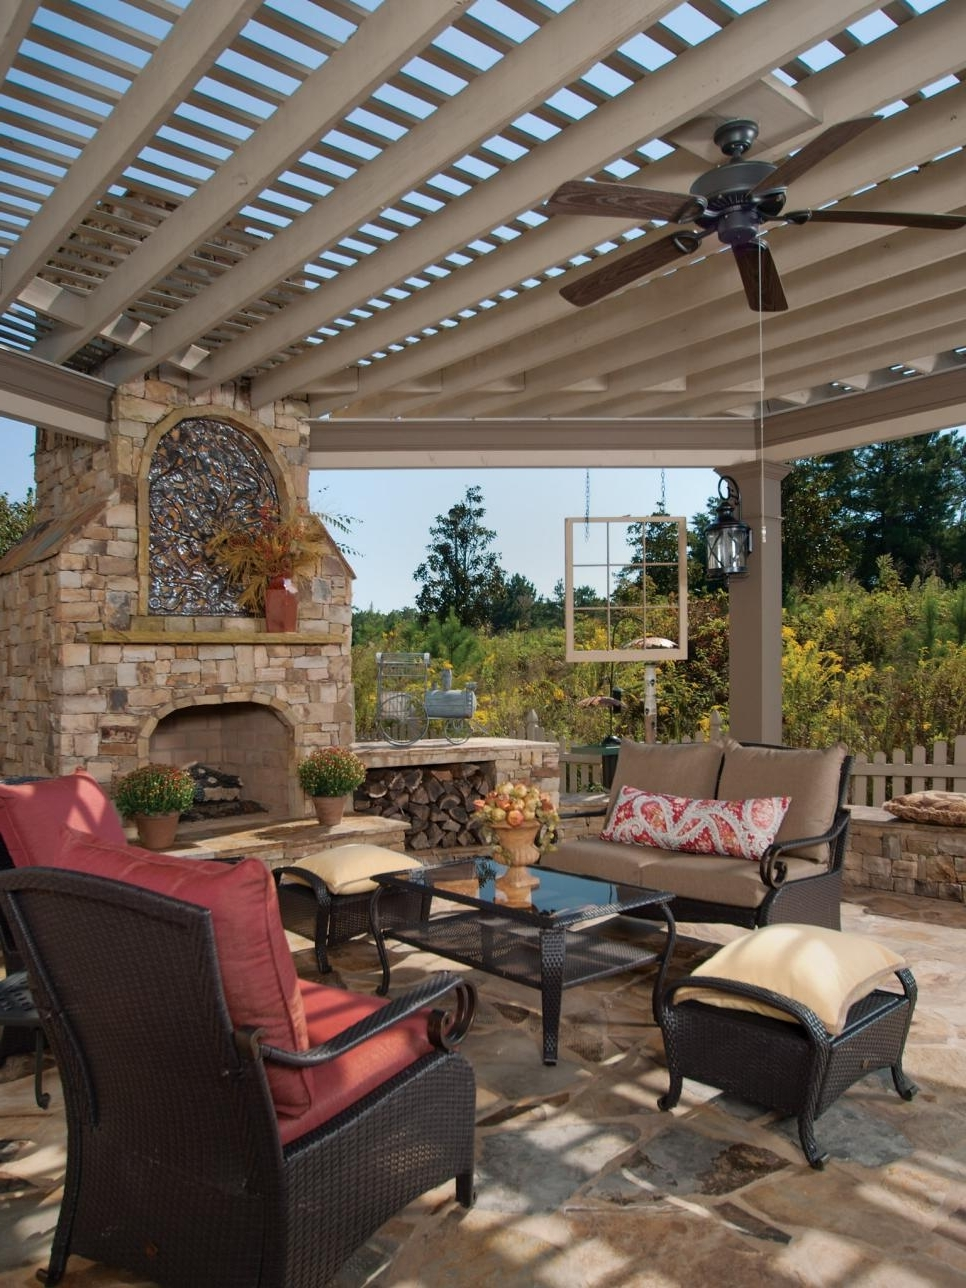 Outdoor Ceiling Fans For Decks With Regard To Newest Pictures: Outdoor Fans For Decks, – Diy Home Design & Furniture (View 10 of 20)